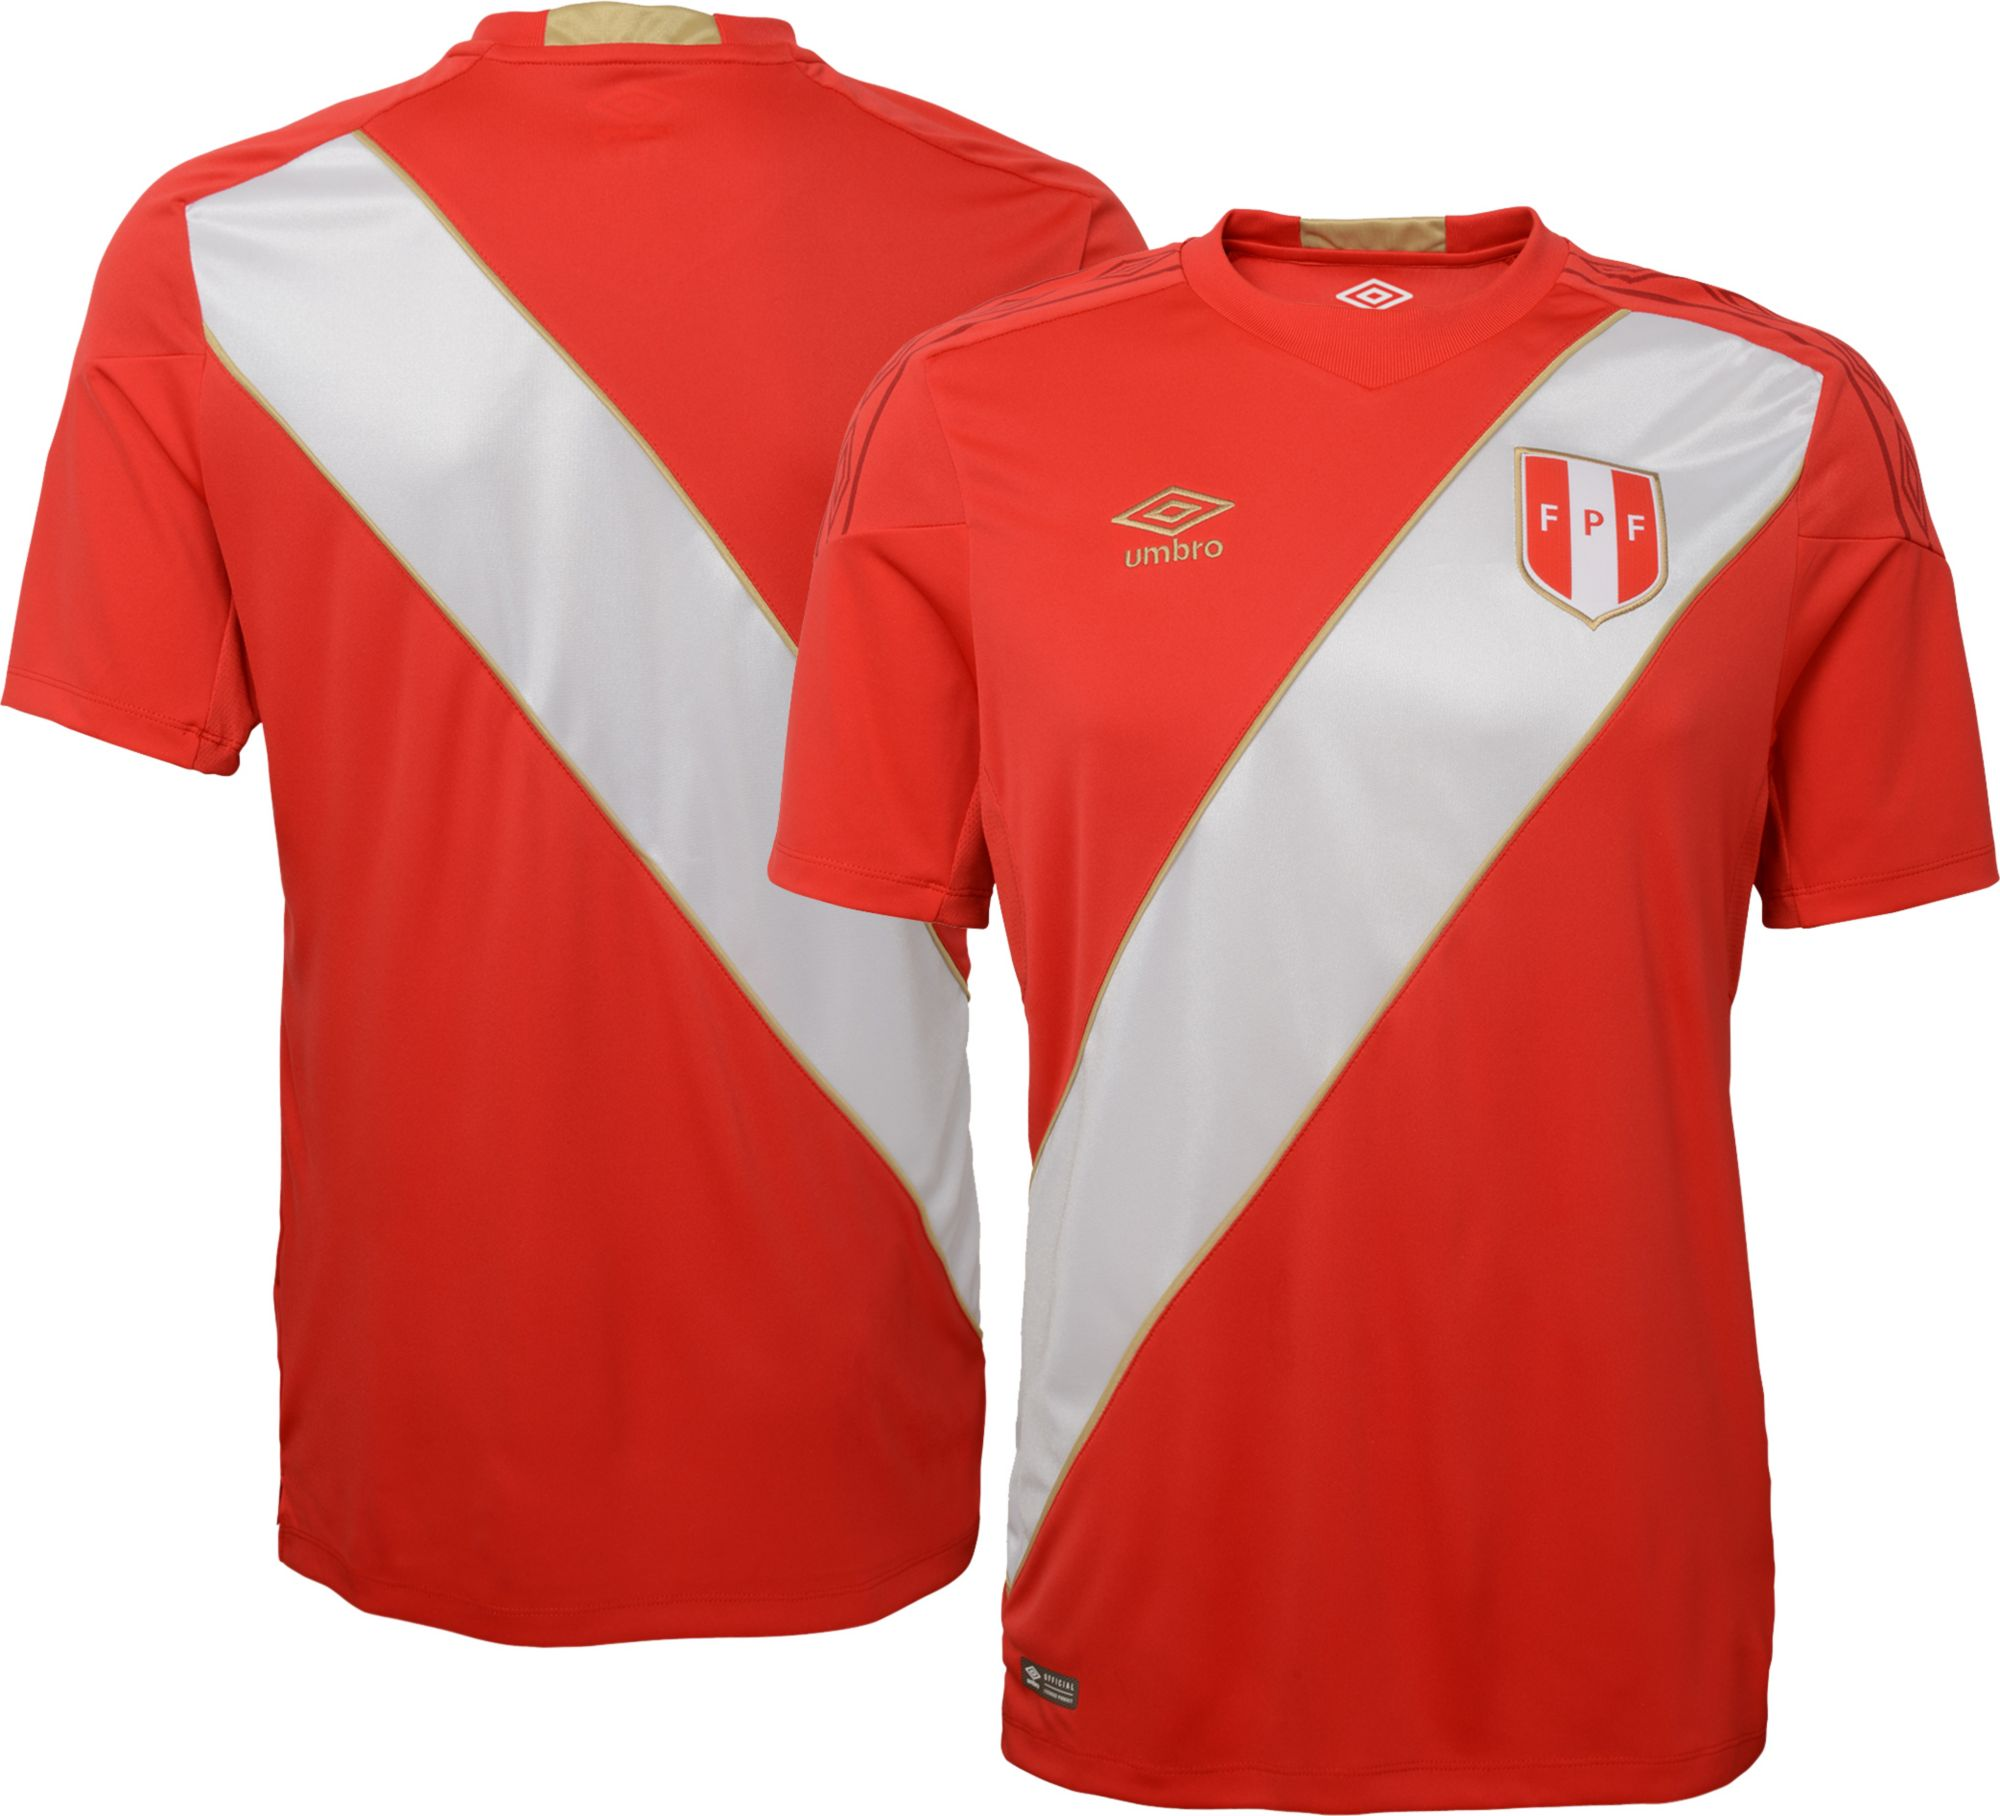 b2d0098a4 Umbro Men s 2018 Fifa World Cup Peru Away Replica Jersey